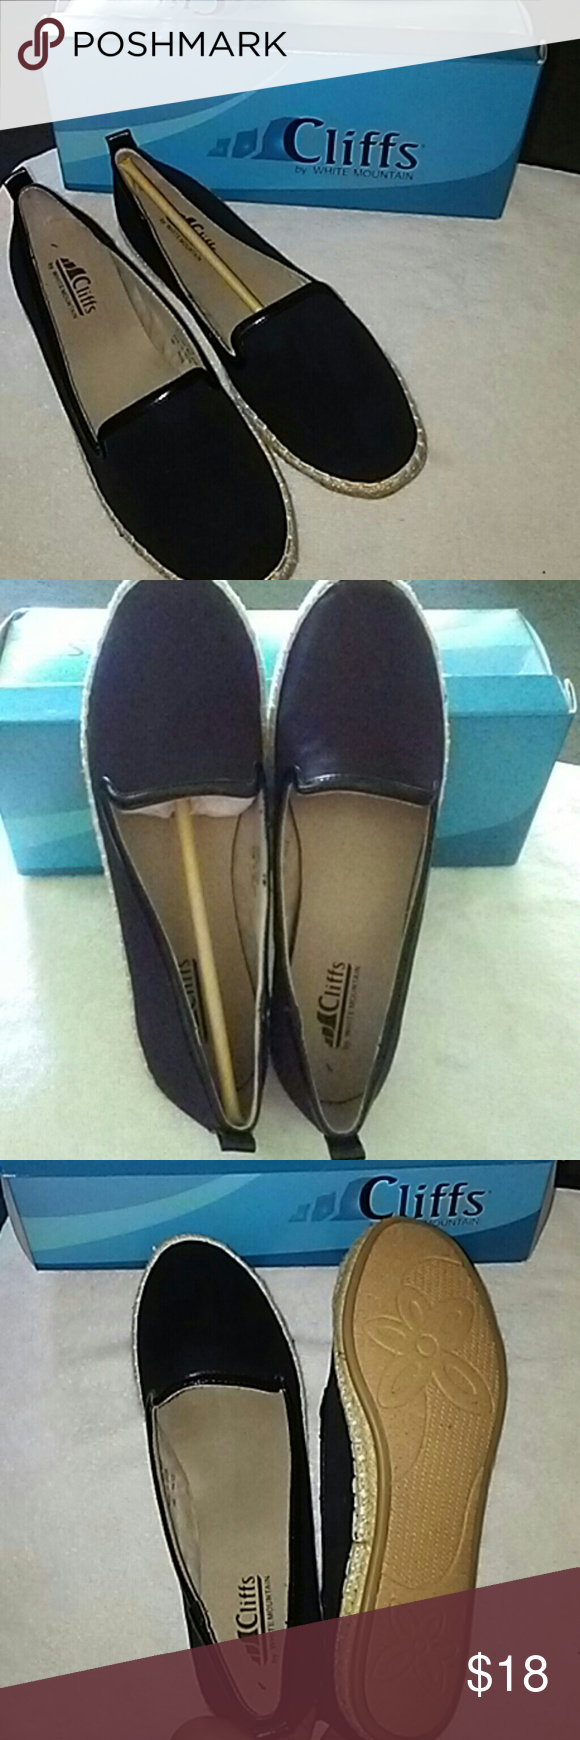 Black canvas flats New in original box!  Black canvas flats sz 8.5M .A very cute and comfortable casual shoe.  Size 7.5 & 8.5 available Shoes Flats & Loafers